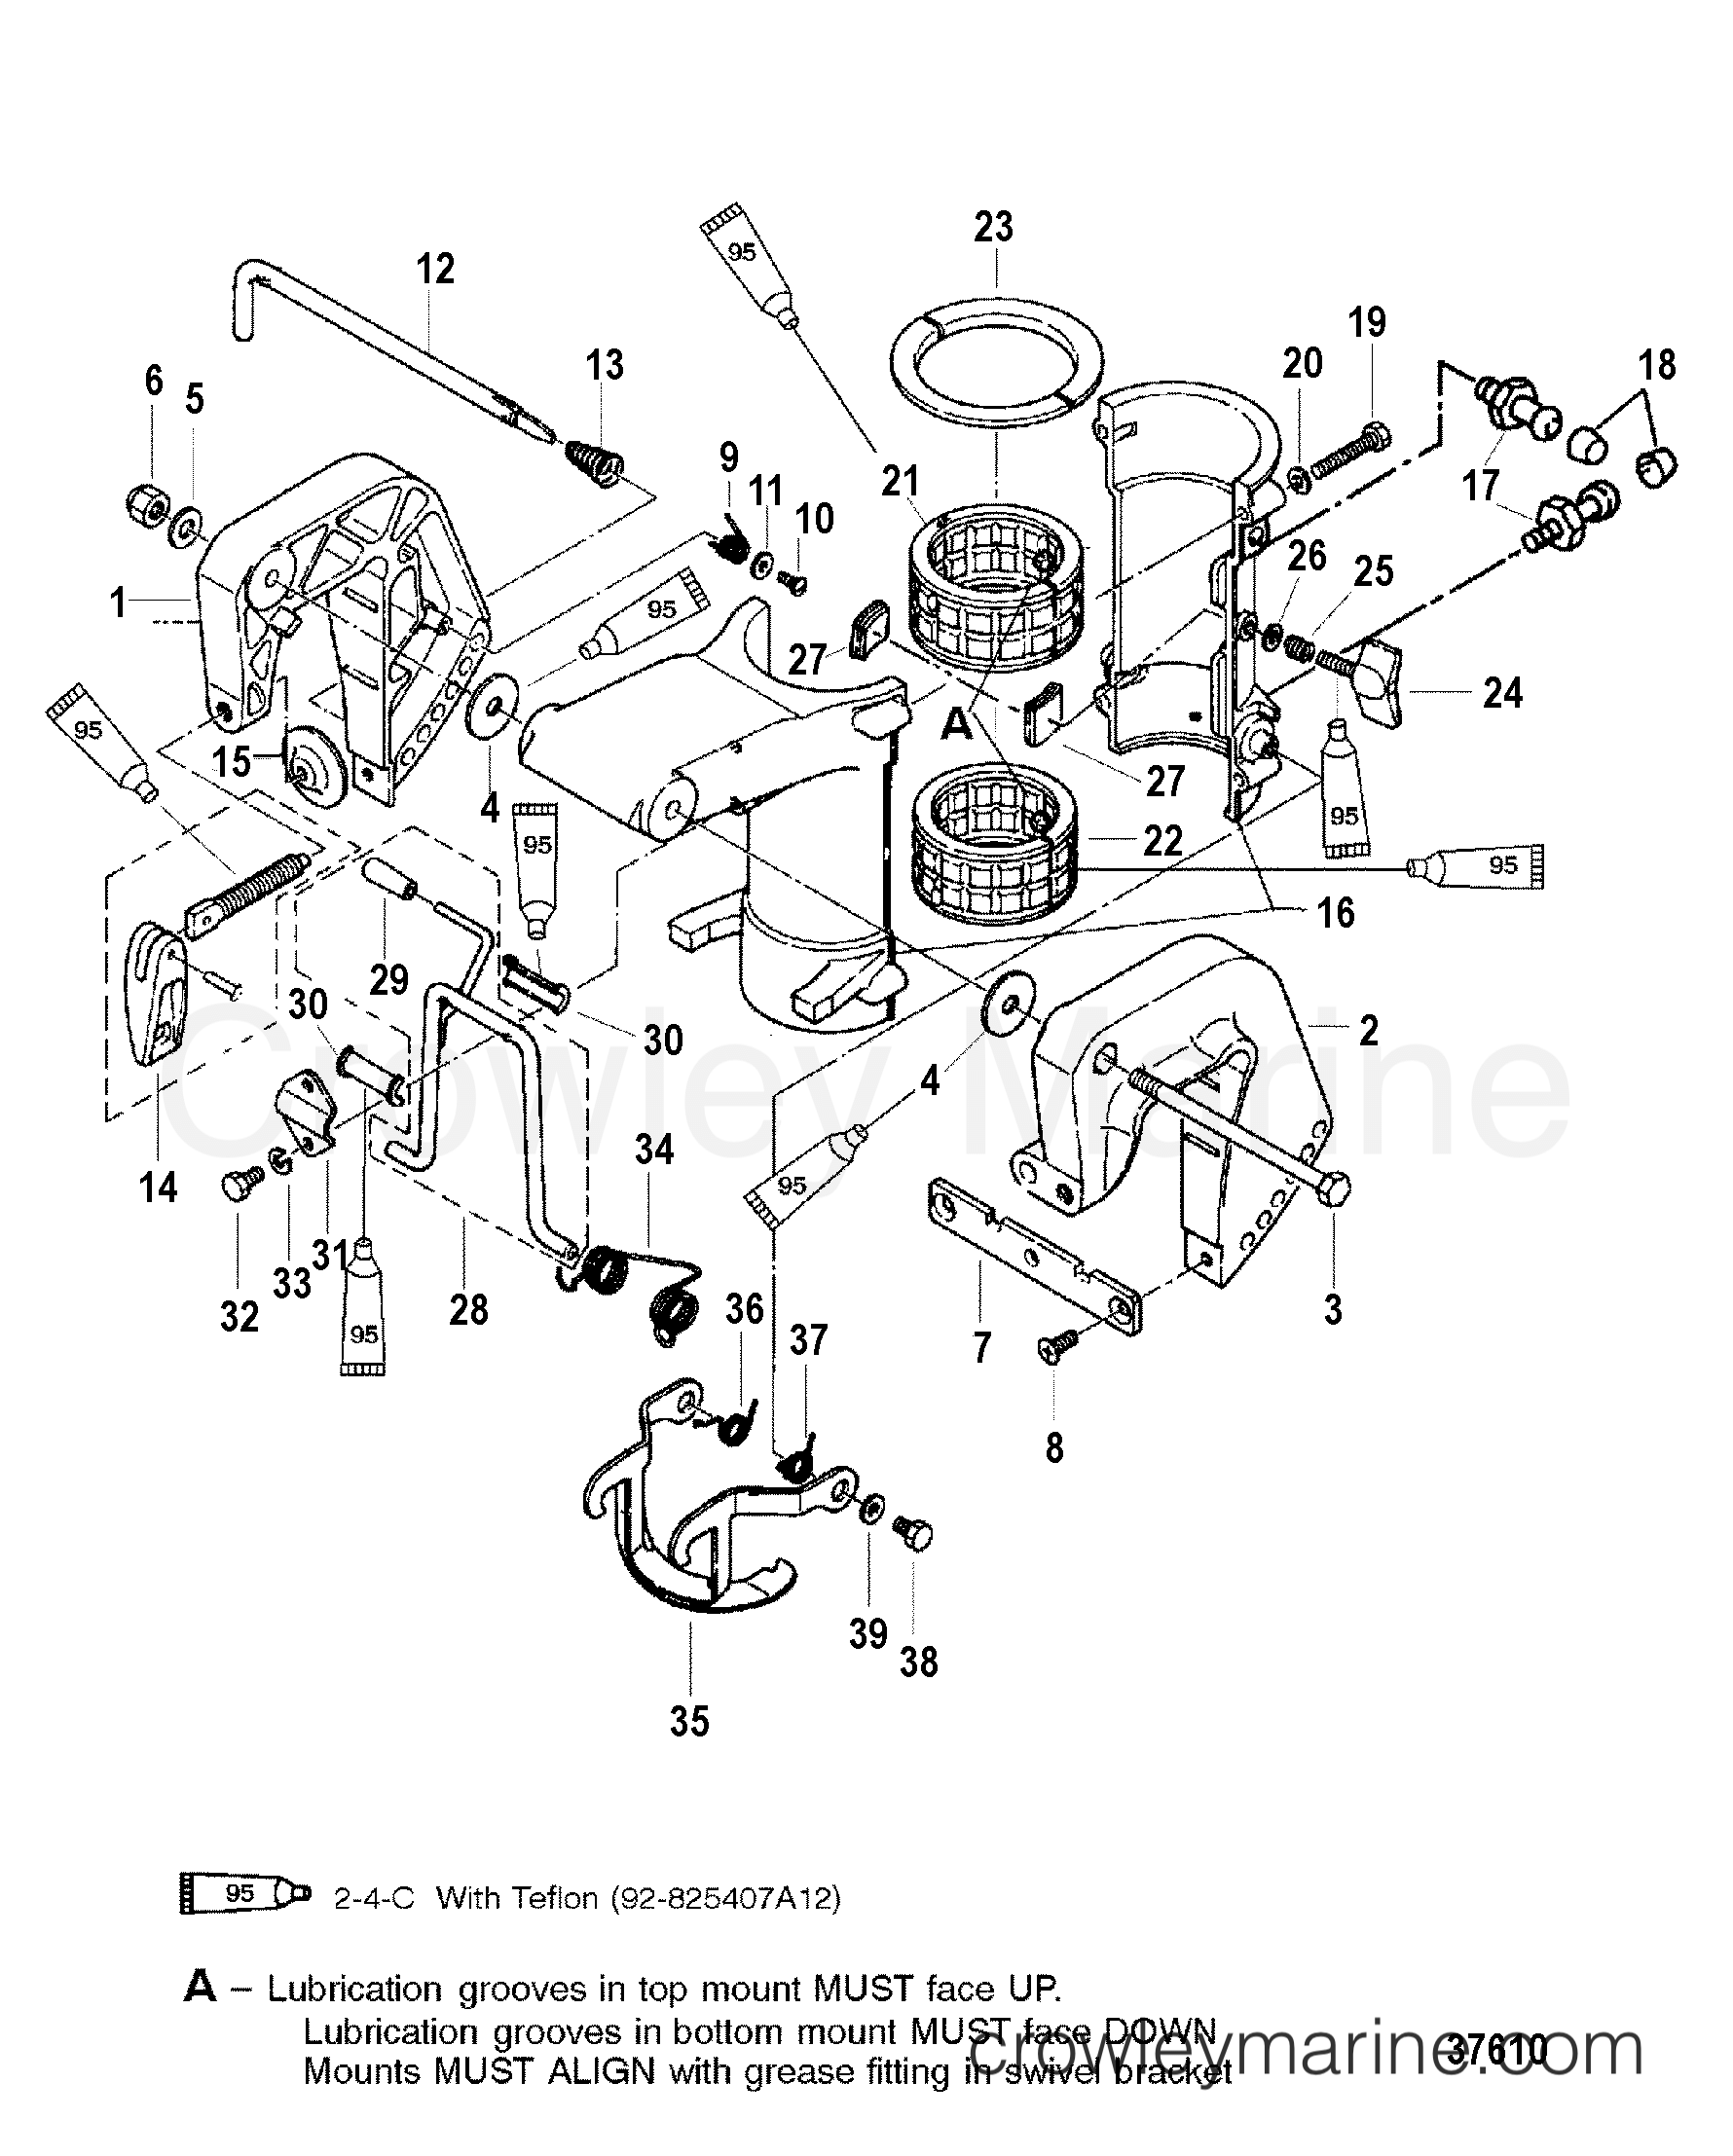 clamp and swivel brackets